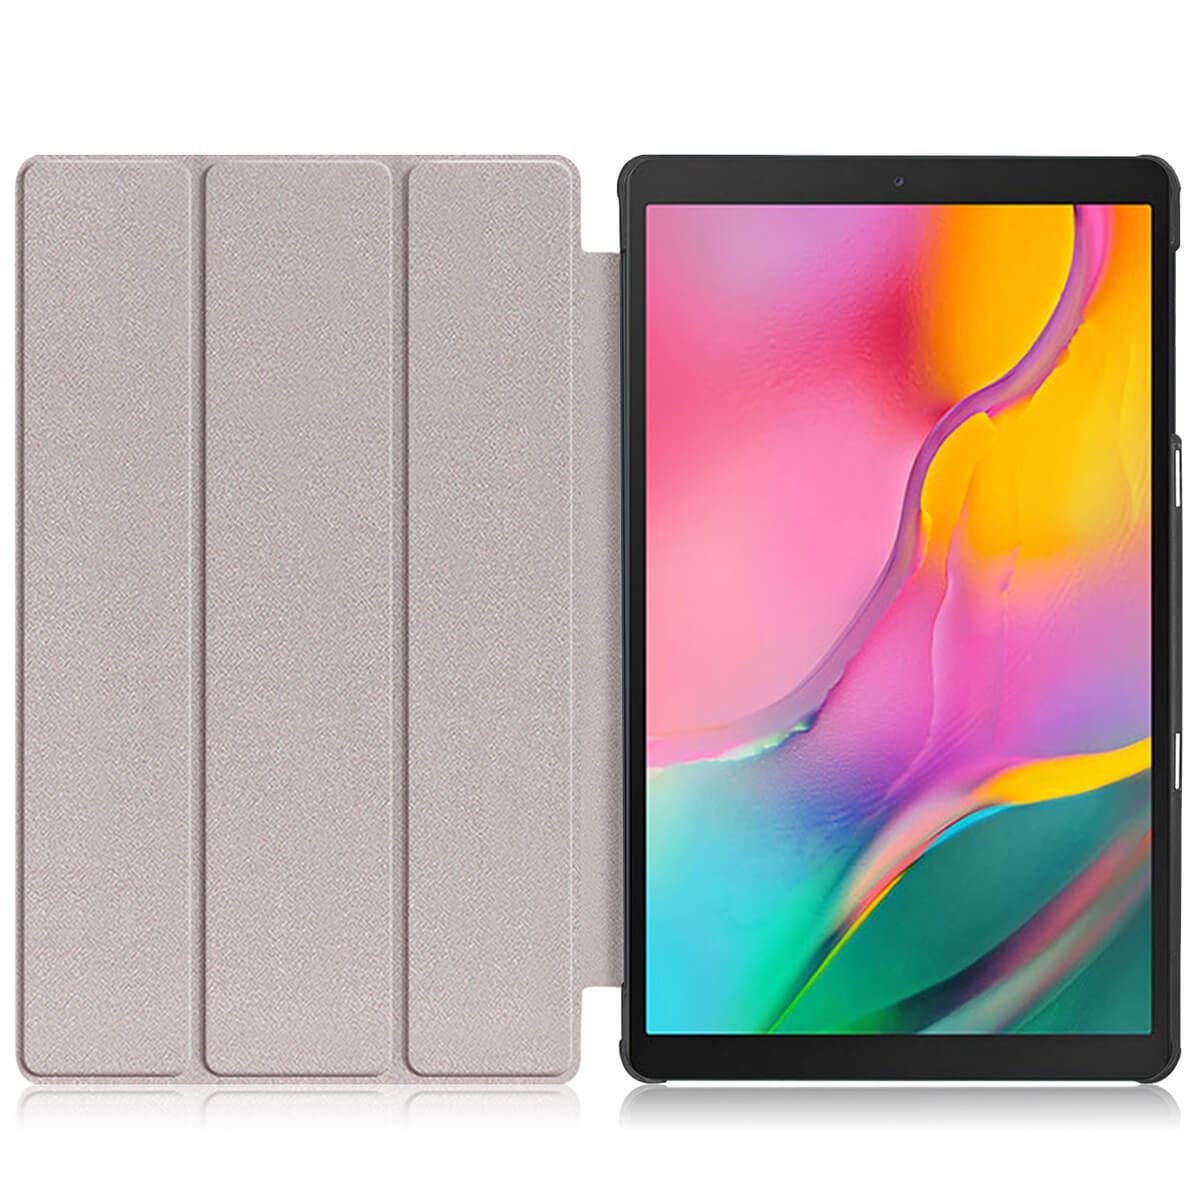 Flip-Cover-Trifold-Case-For-T510-T515-Samsung-Galaxy-Tab-A-2019-10-1-Full-Body thumbnail 6